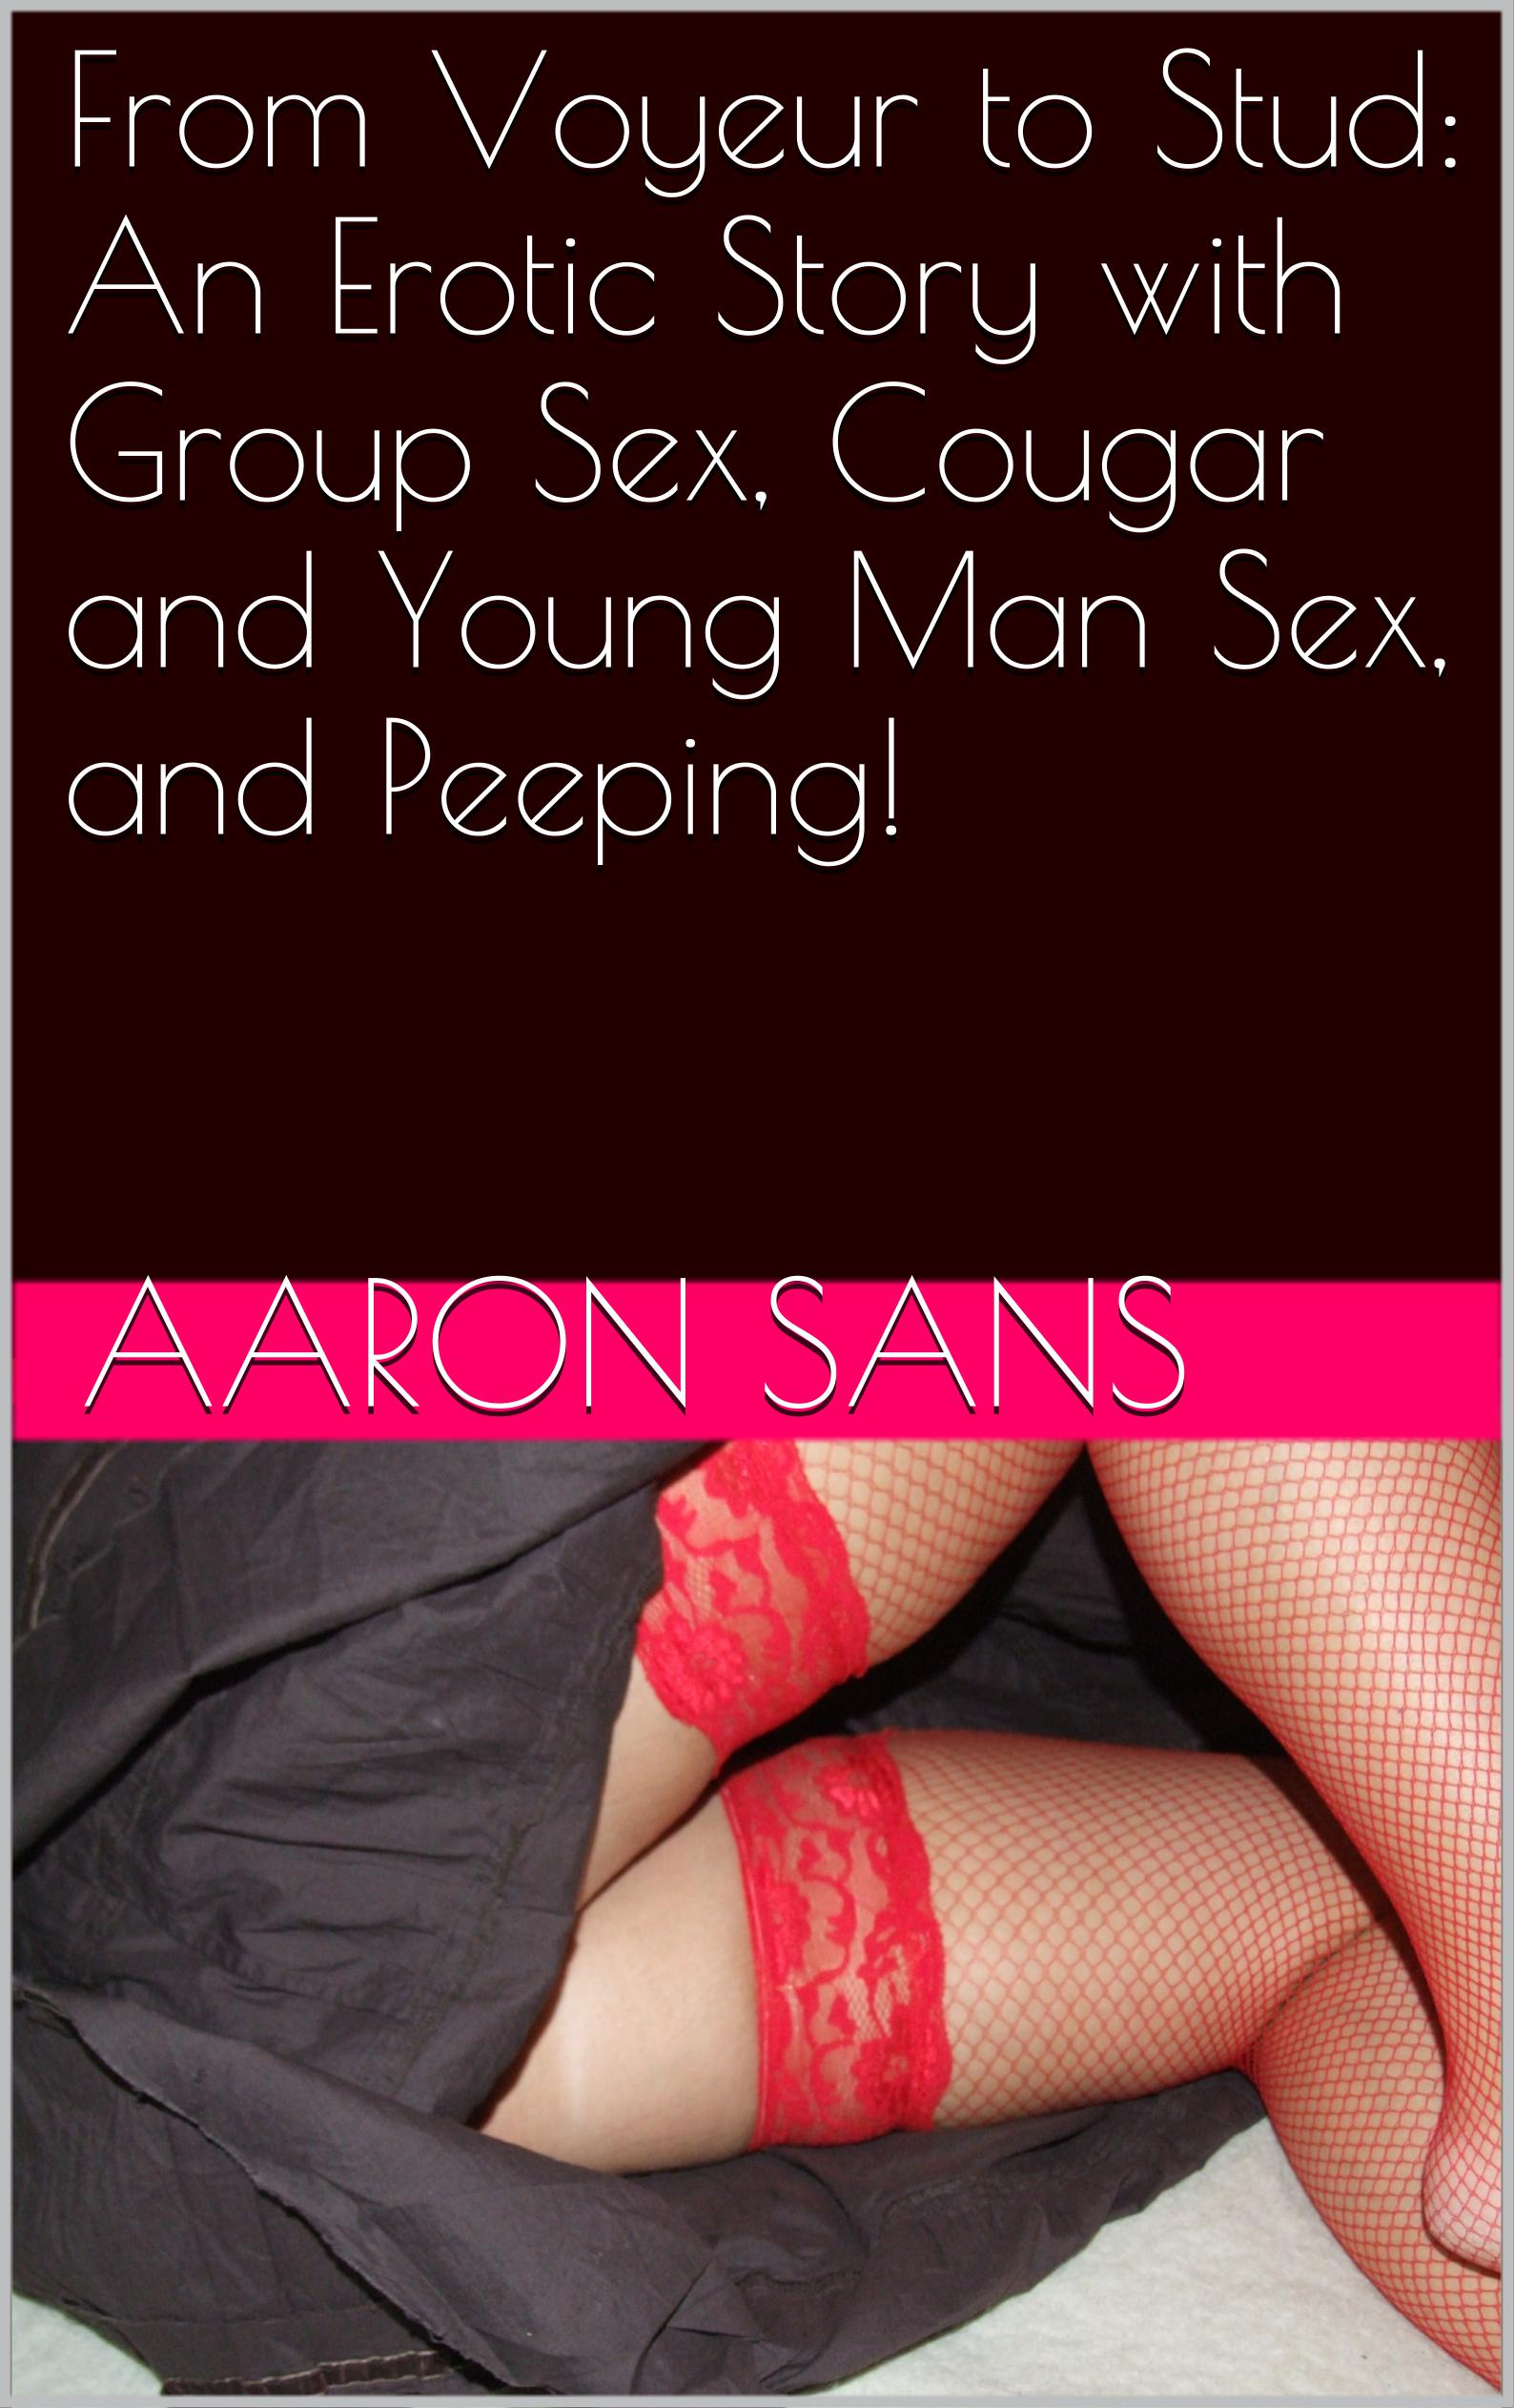 From Voyeur to Stud: An Erotic Story with Group Sex, Cougar and Young Man  Sex, and Peeping!